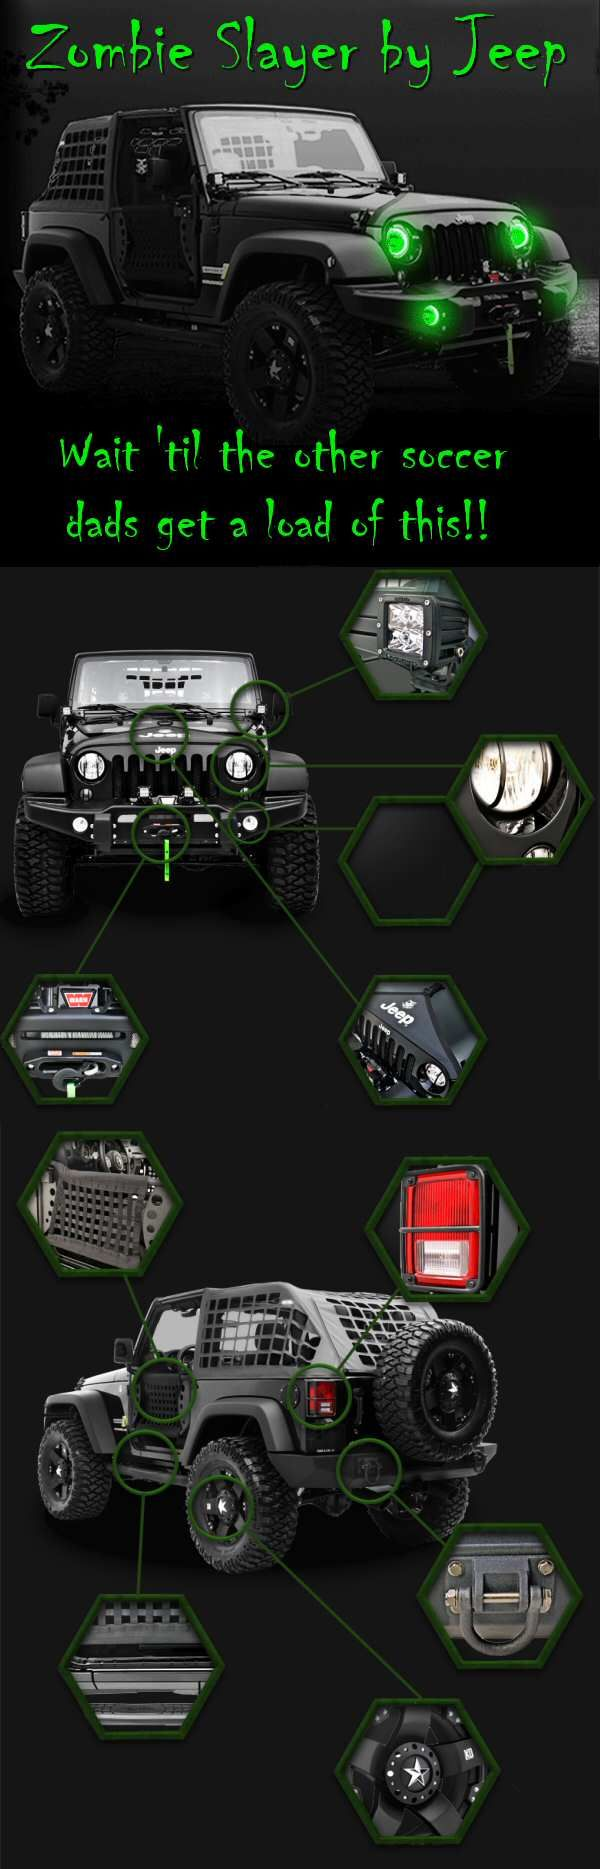 The Jeep ZS1 Zombie Slayer—Because the Zombie Apocalypse is no time to drive a Prius! This is real and I want it!